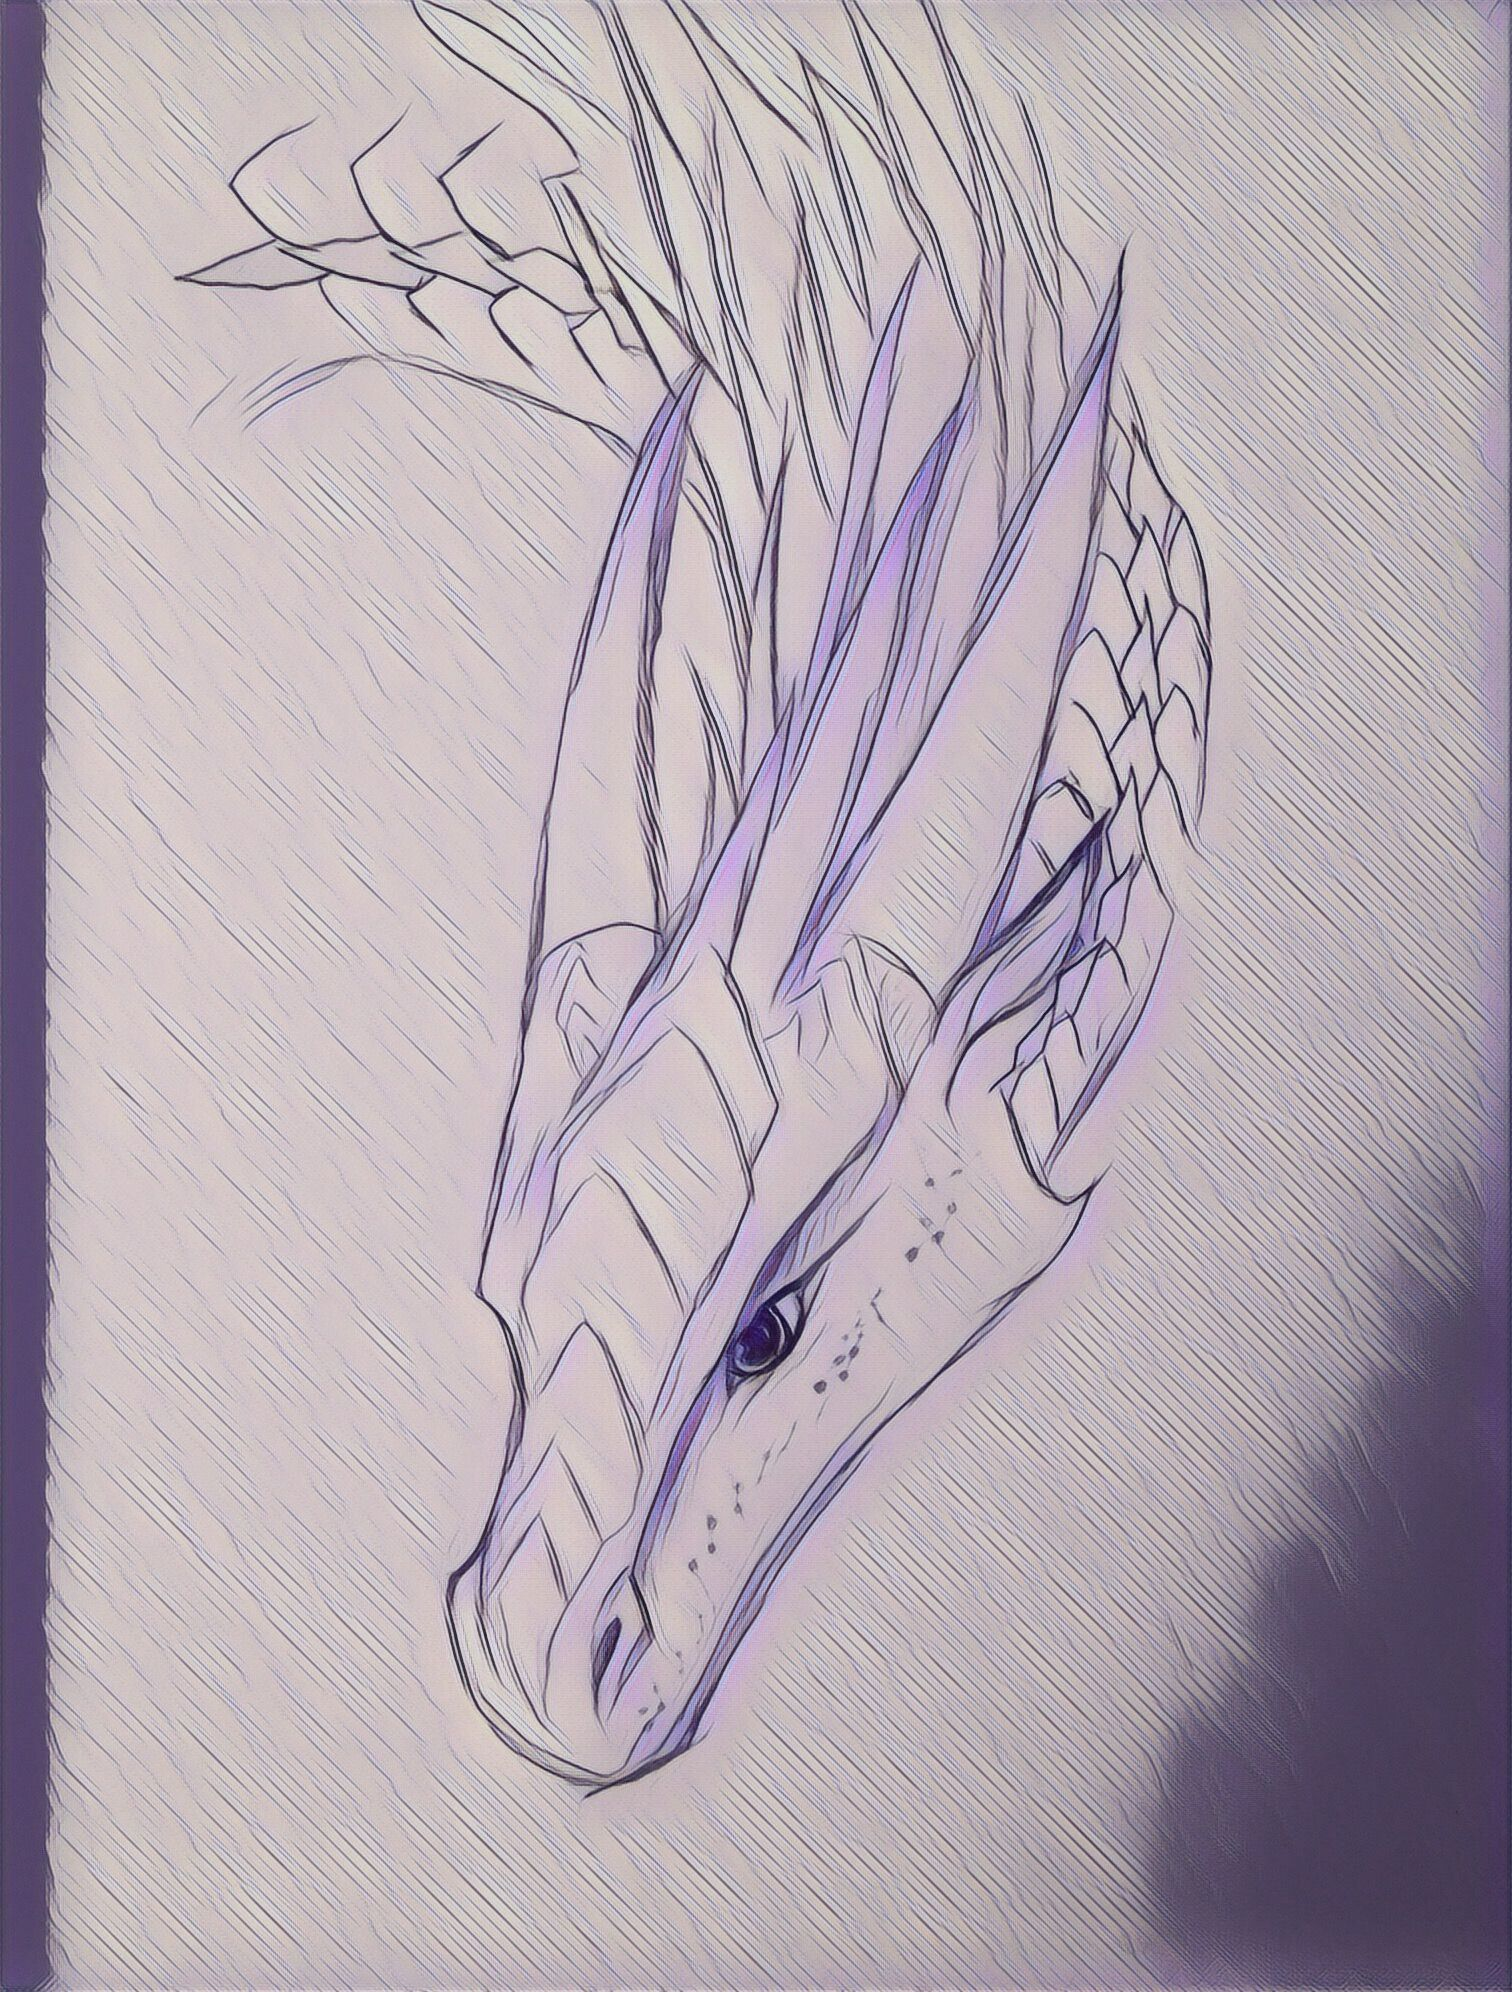 Icewing drawings of dragons drawings of faces cute drawings of animals anime drawings